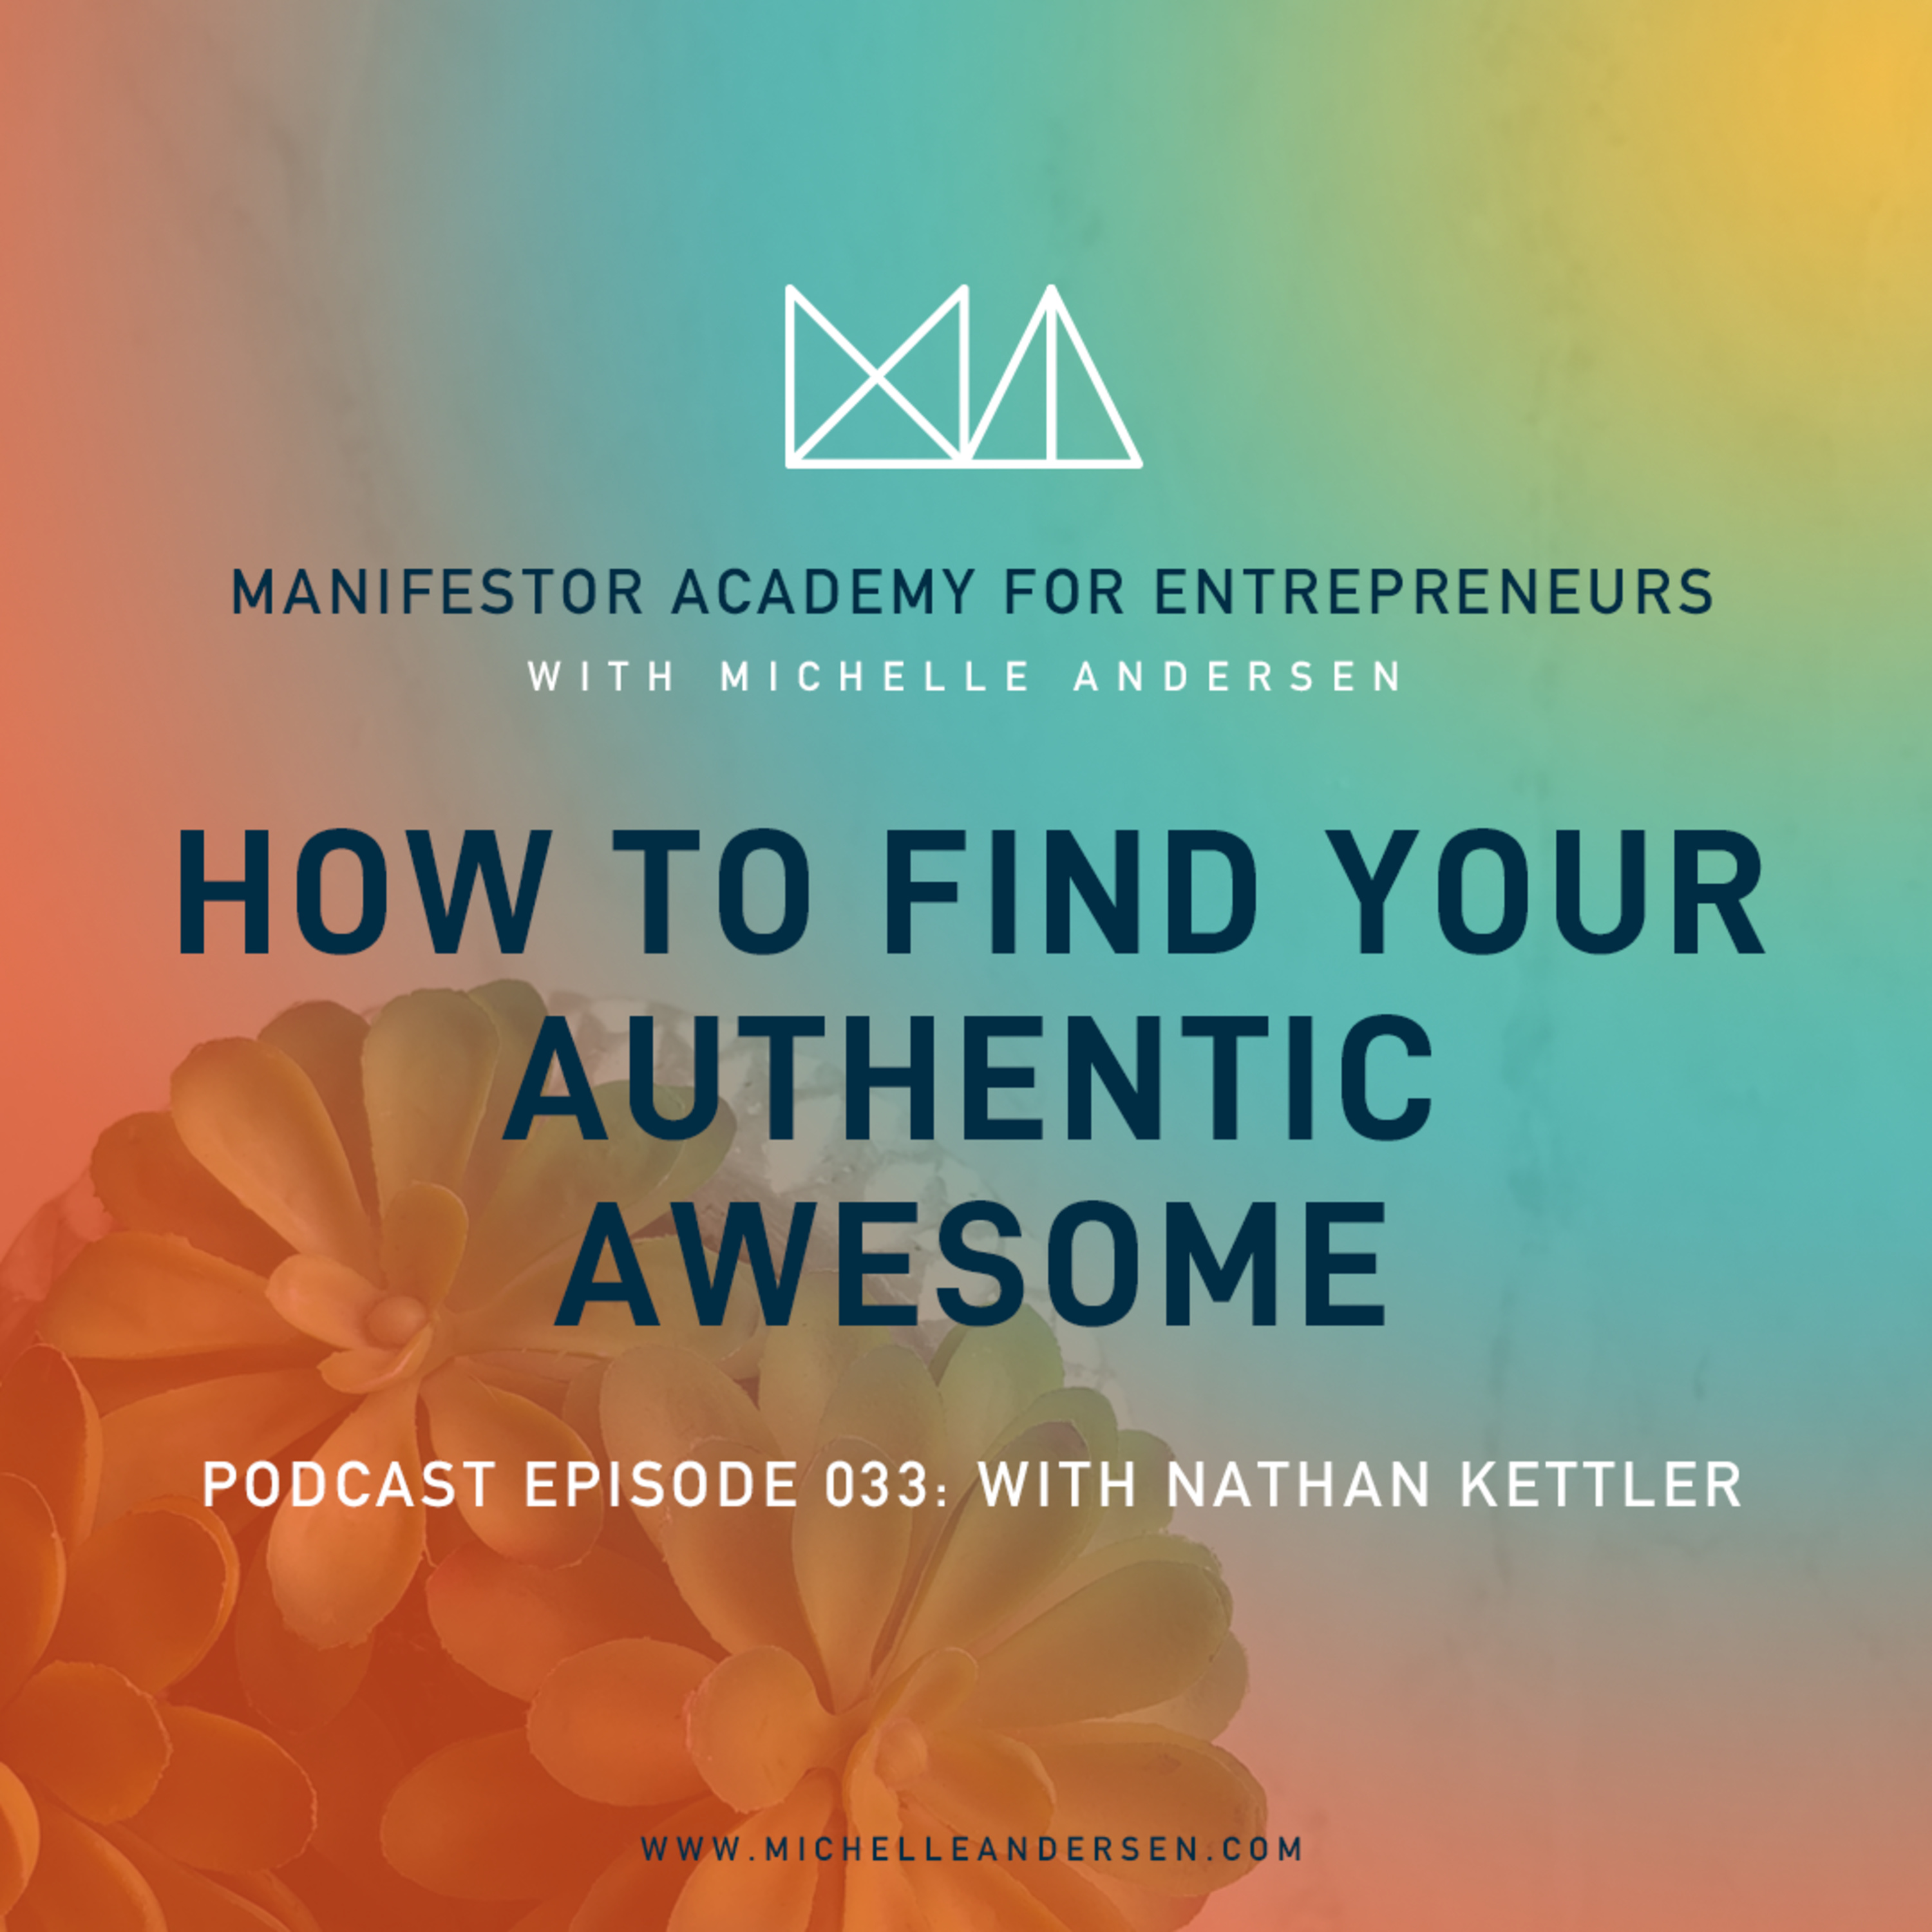 Nathan Kettler on How to Find Your Authentic Awesome